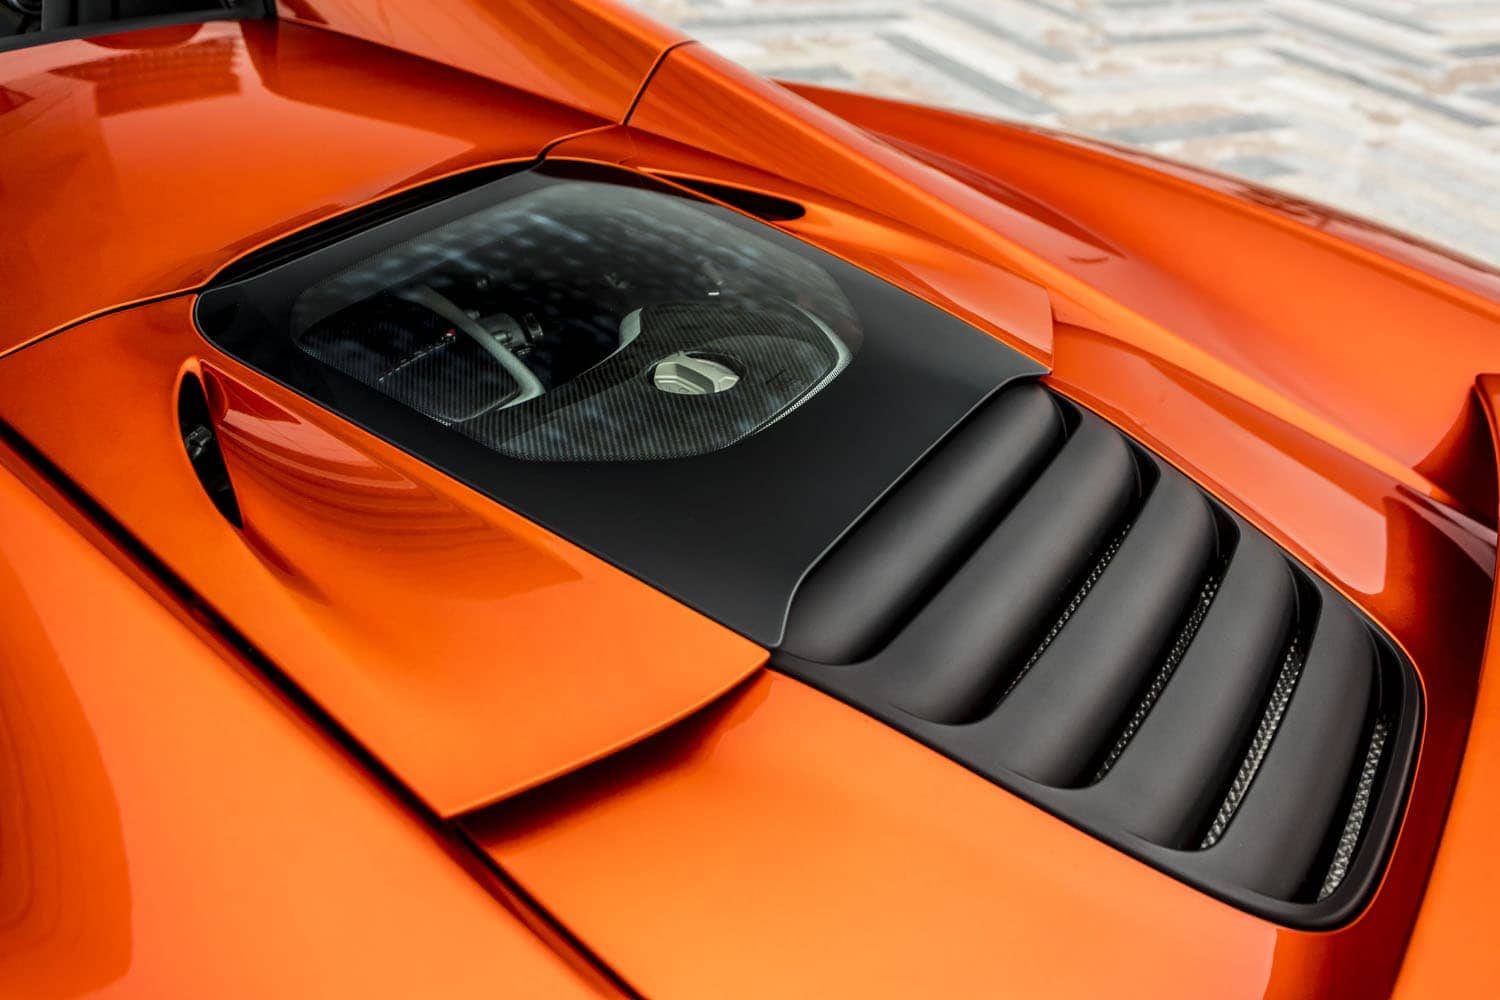 Mclaren 650S Spider Engine Cover